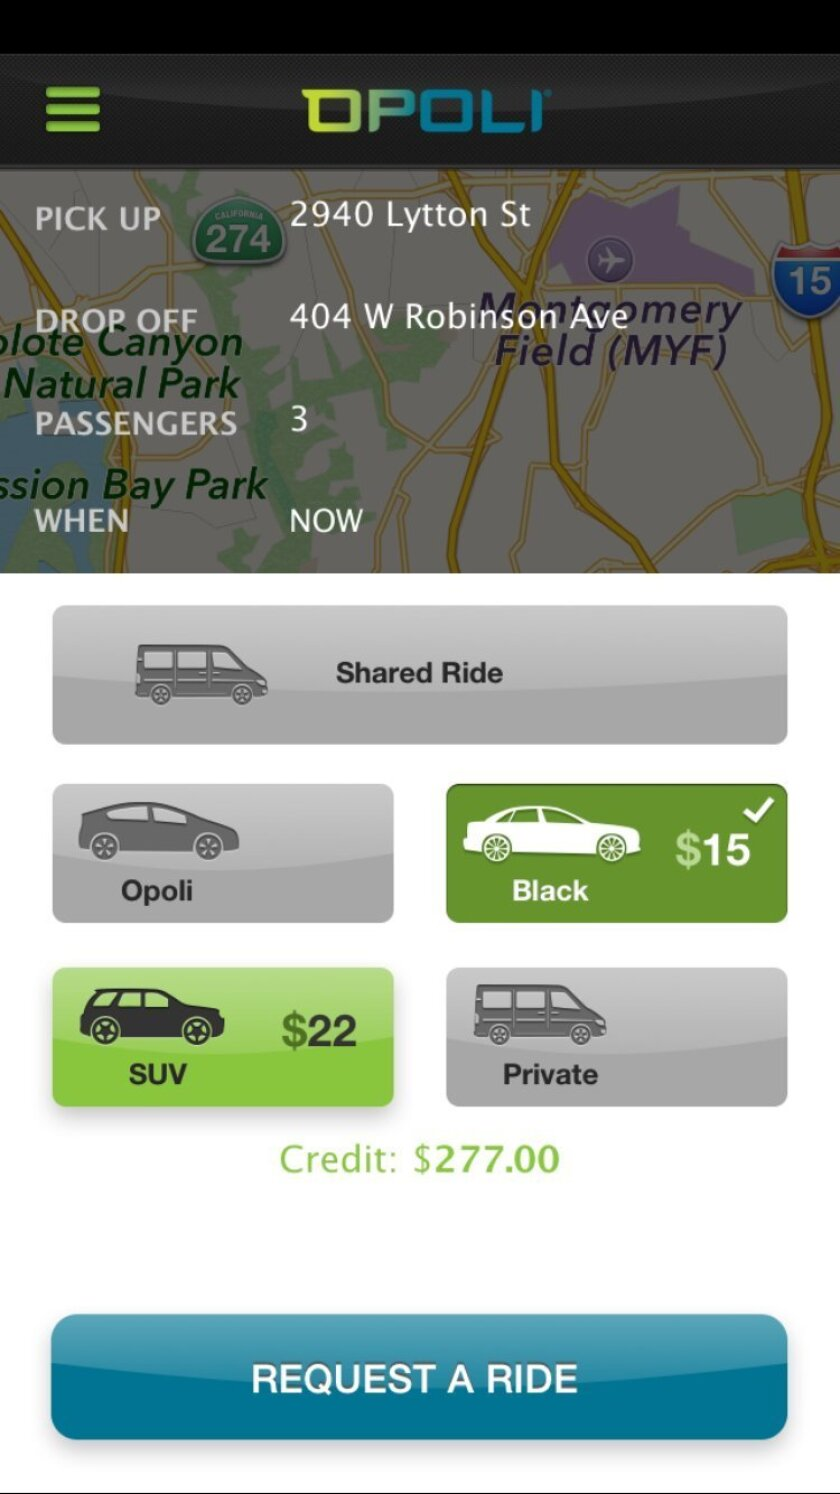 Opoli recommends a price for rides, but you can suggest your own.